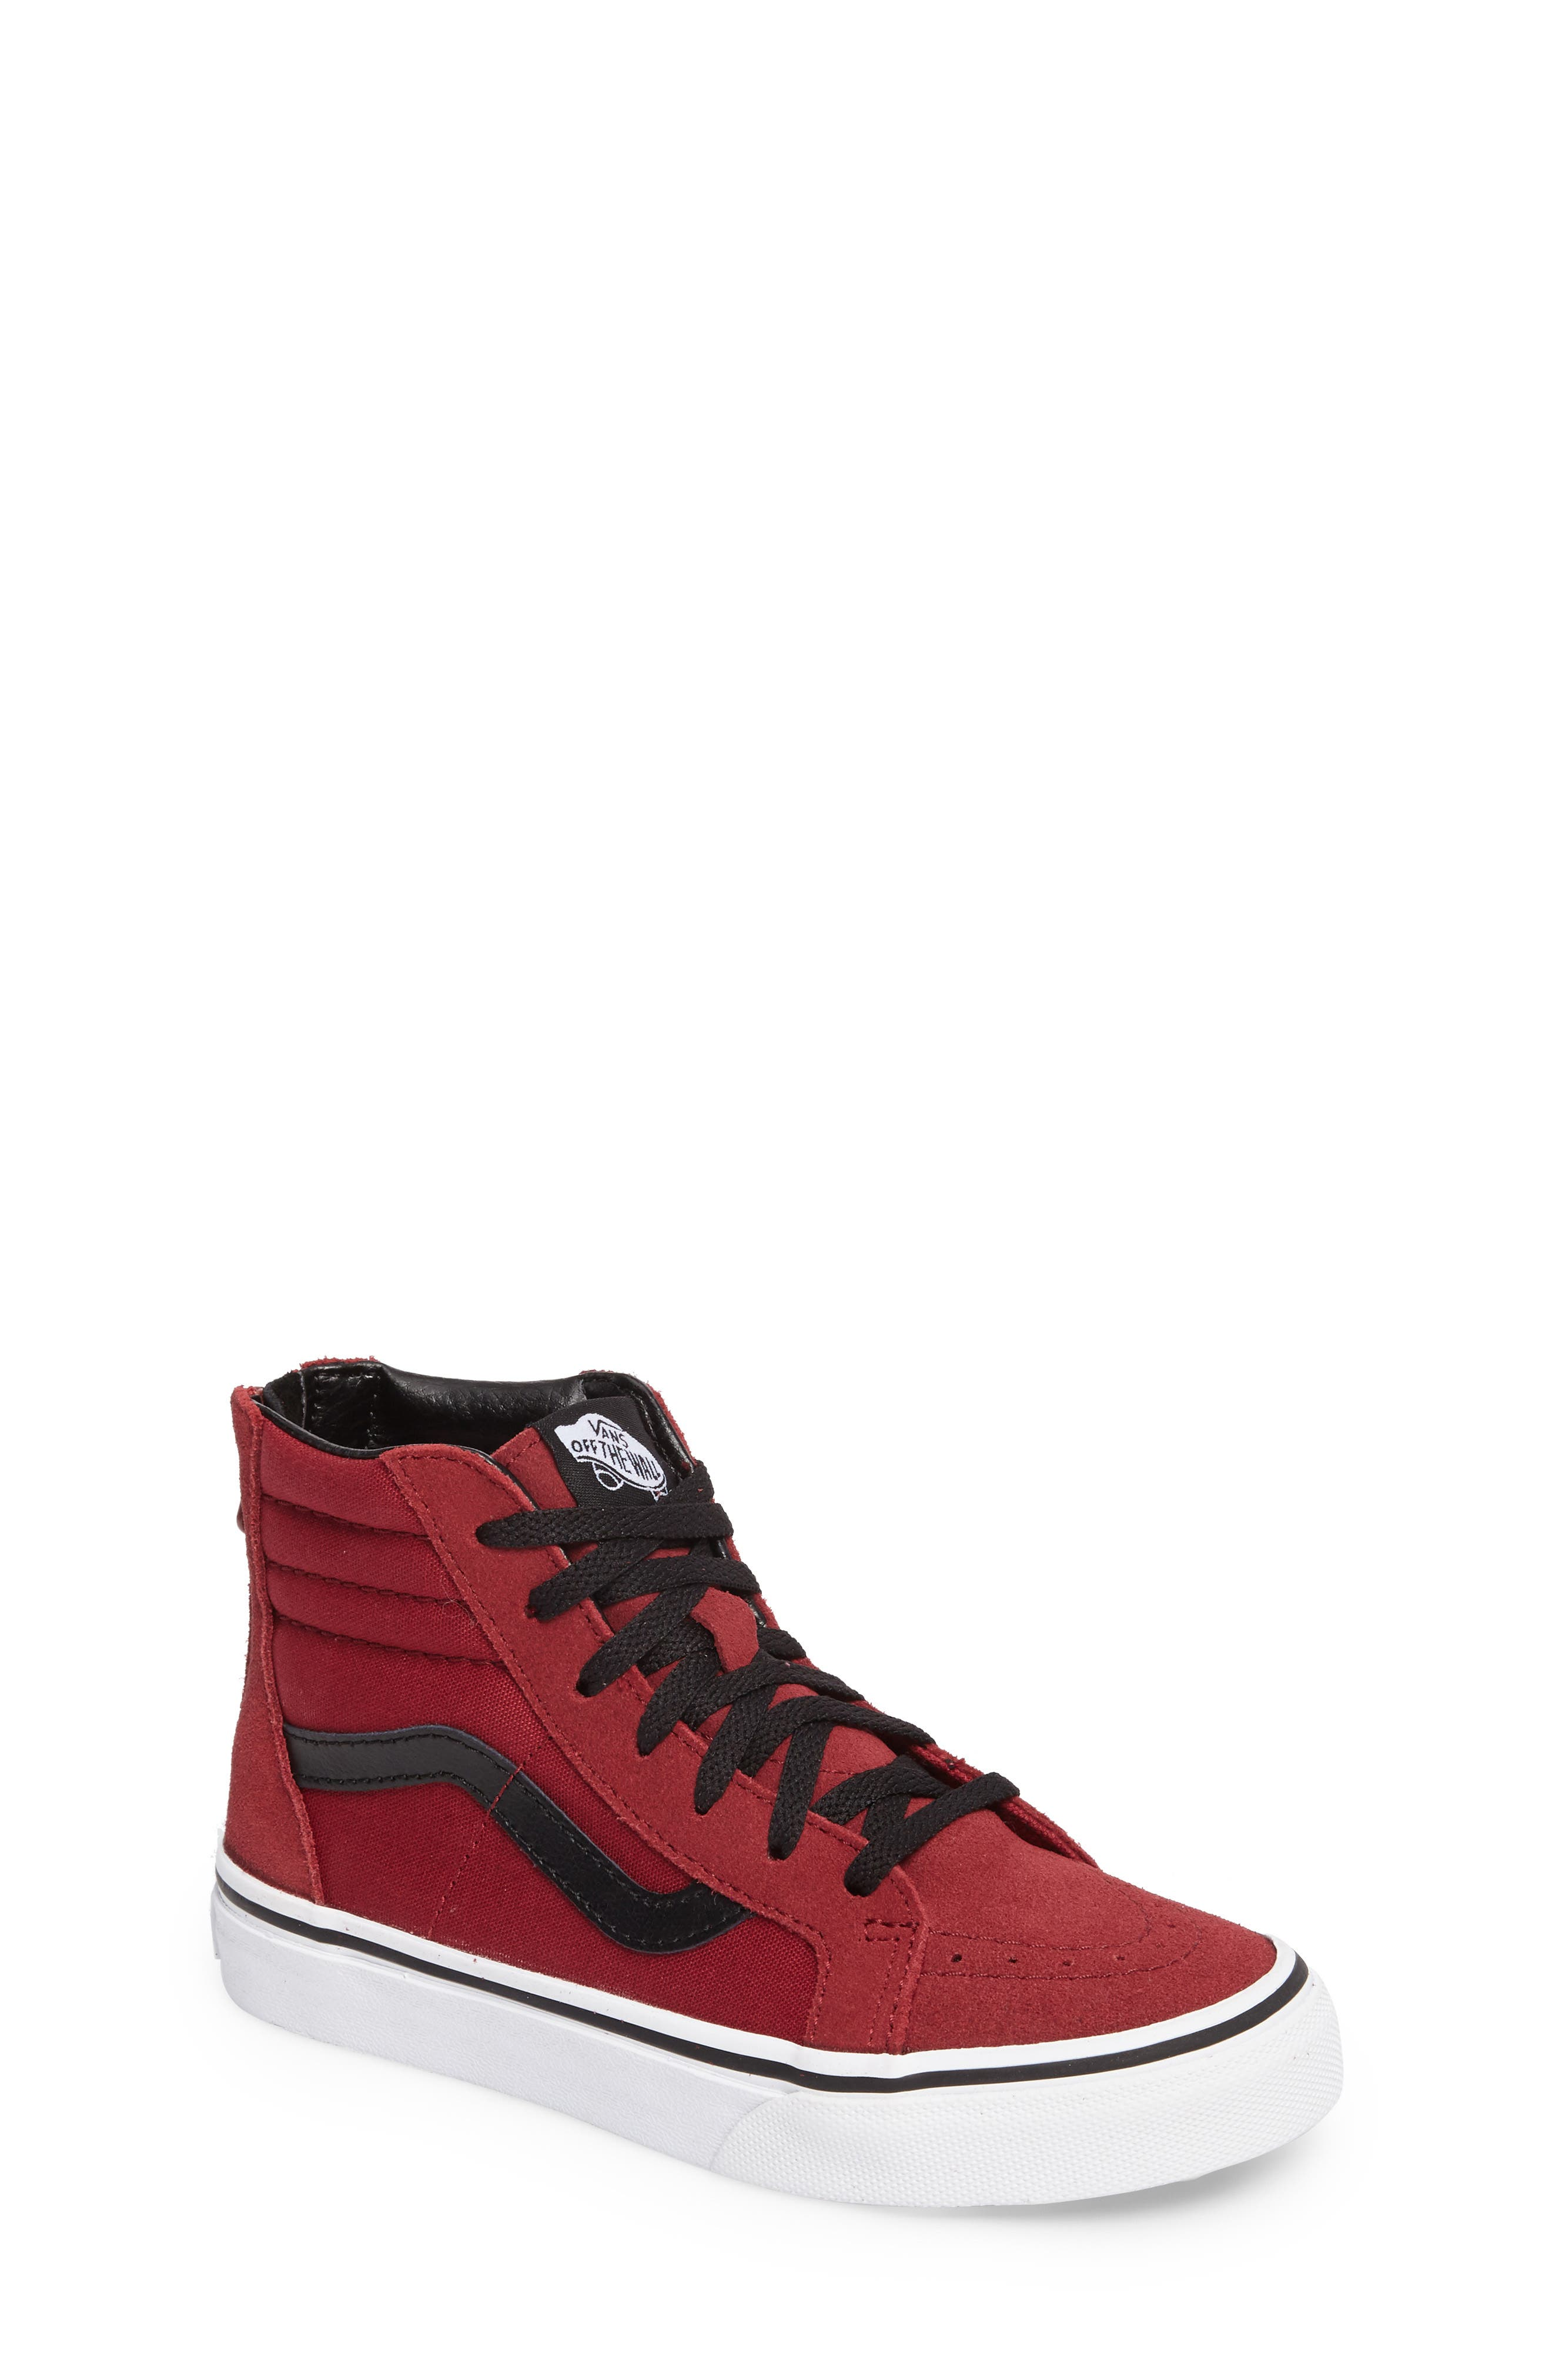 SK8-Hi Zip Sneaker,                         Main,                         color, TIBETAN RED/ BLACK